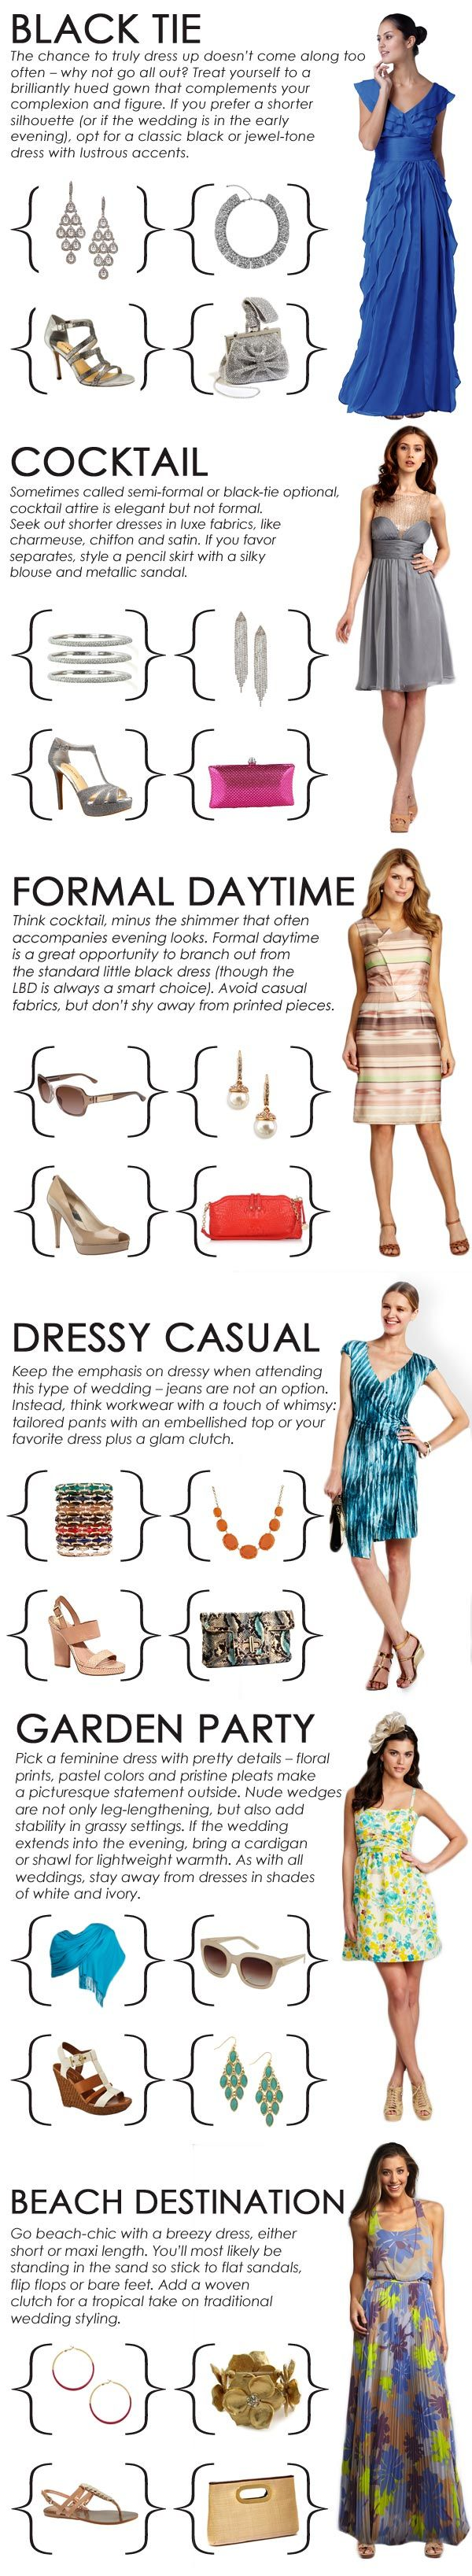 Wedding dress codes -- decoded! #wedding #whattowear